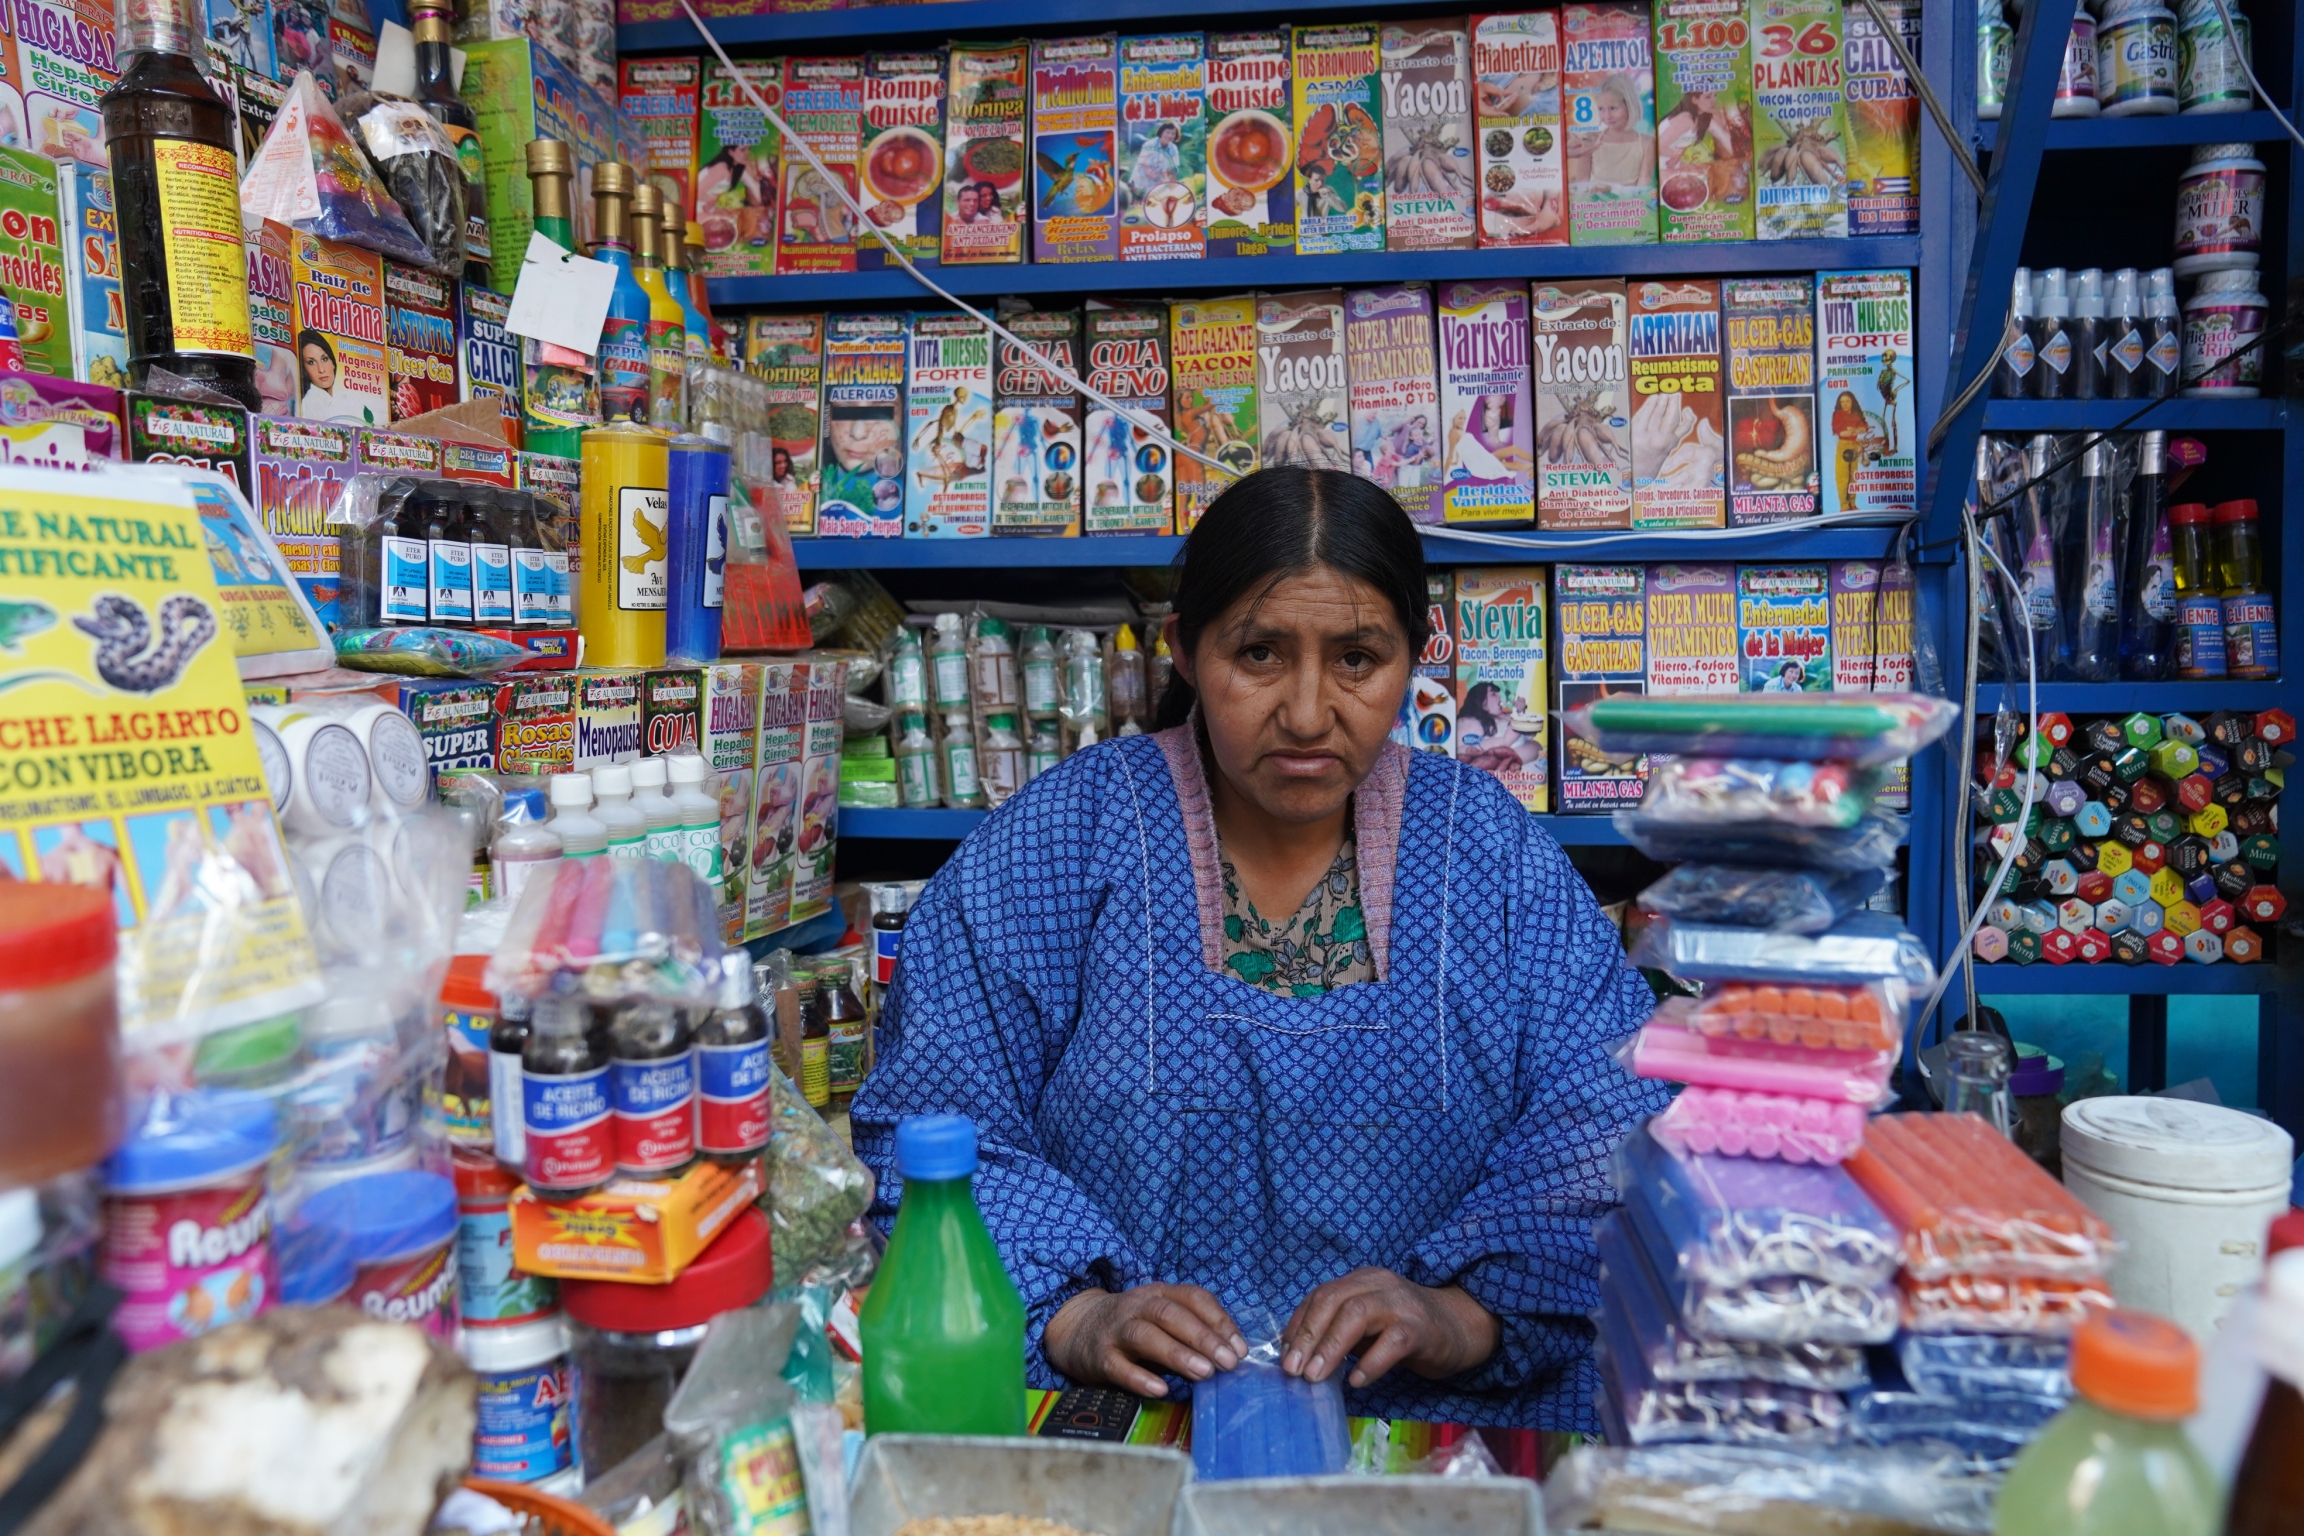 Morales supporter wearing a blue top stands in a fully-stocked shop with bright and colorful products stacked behind her.